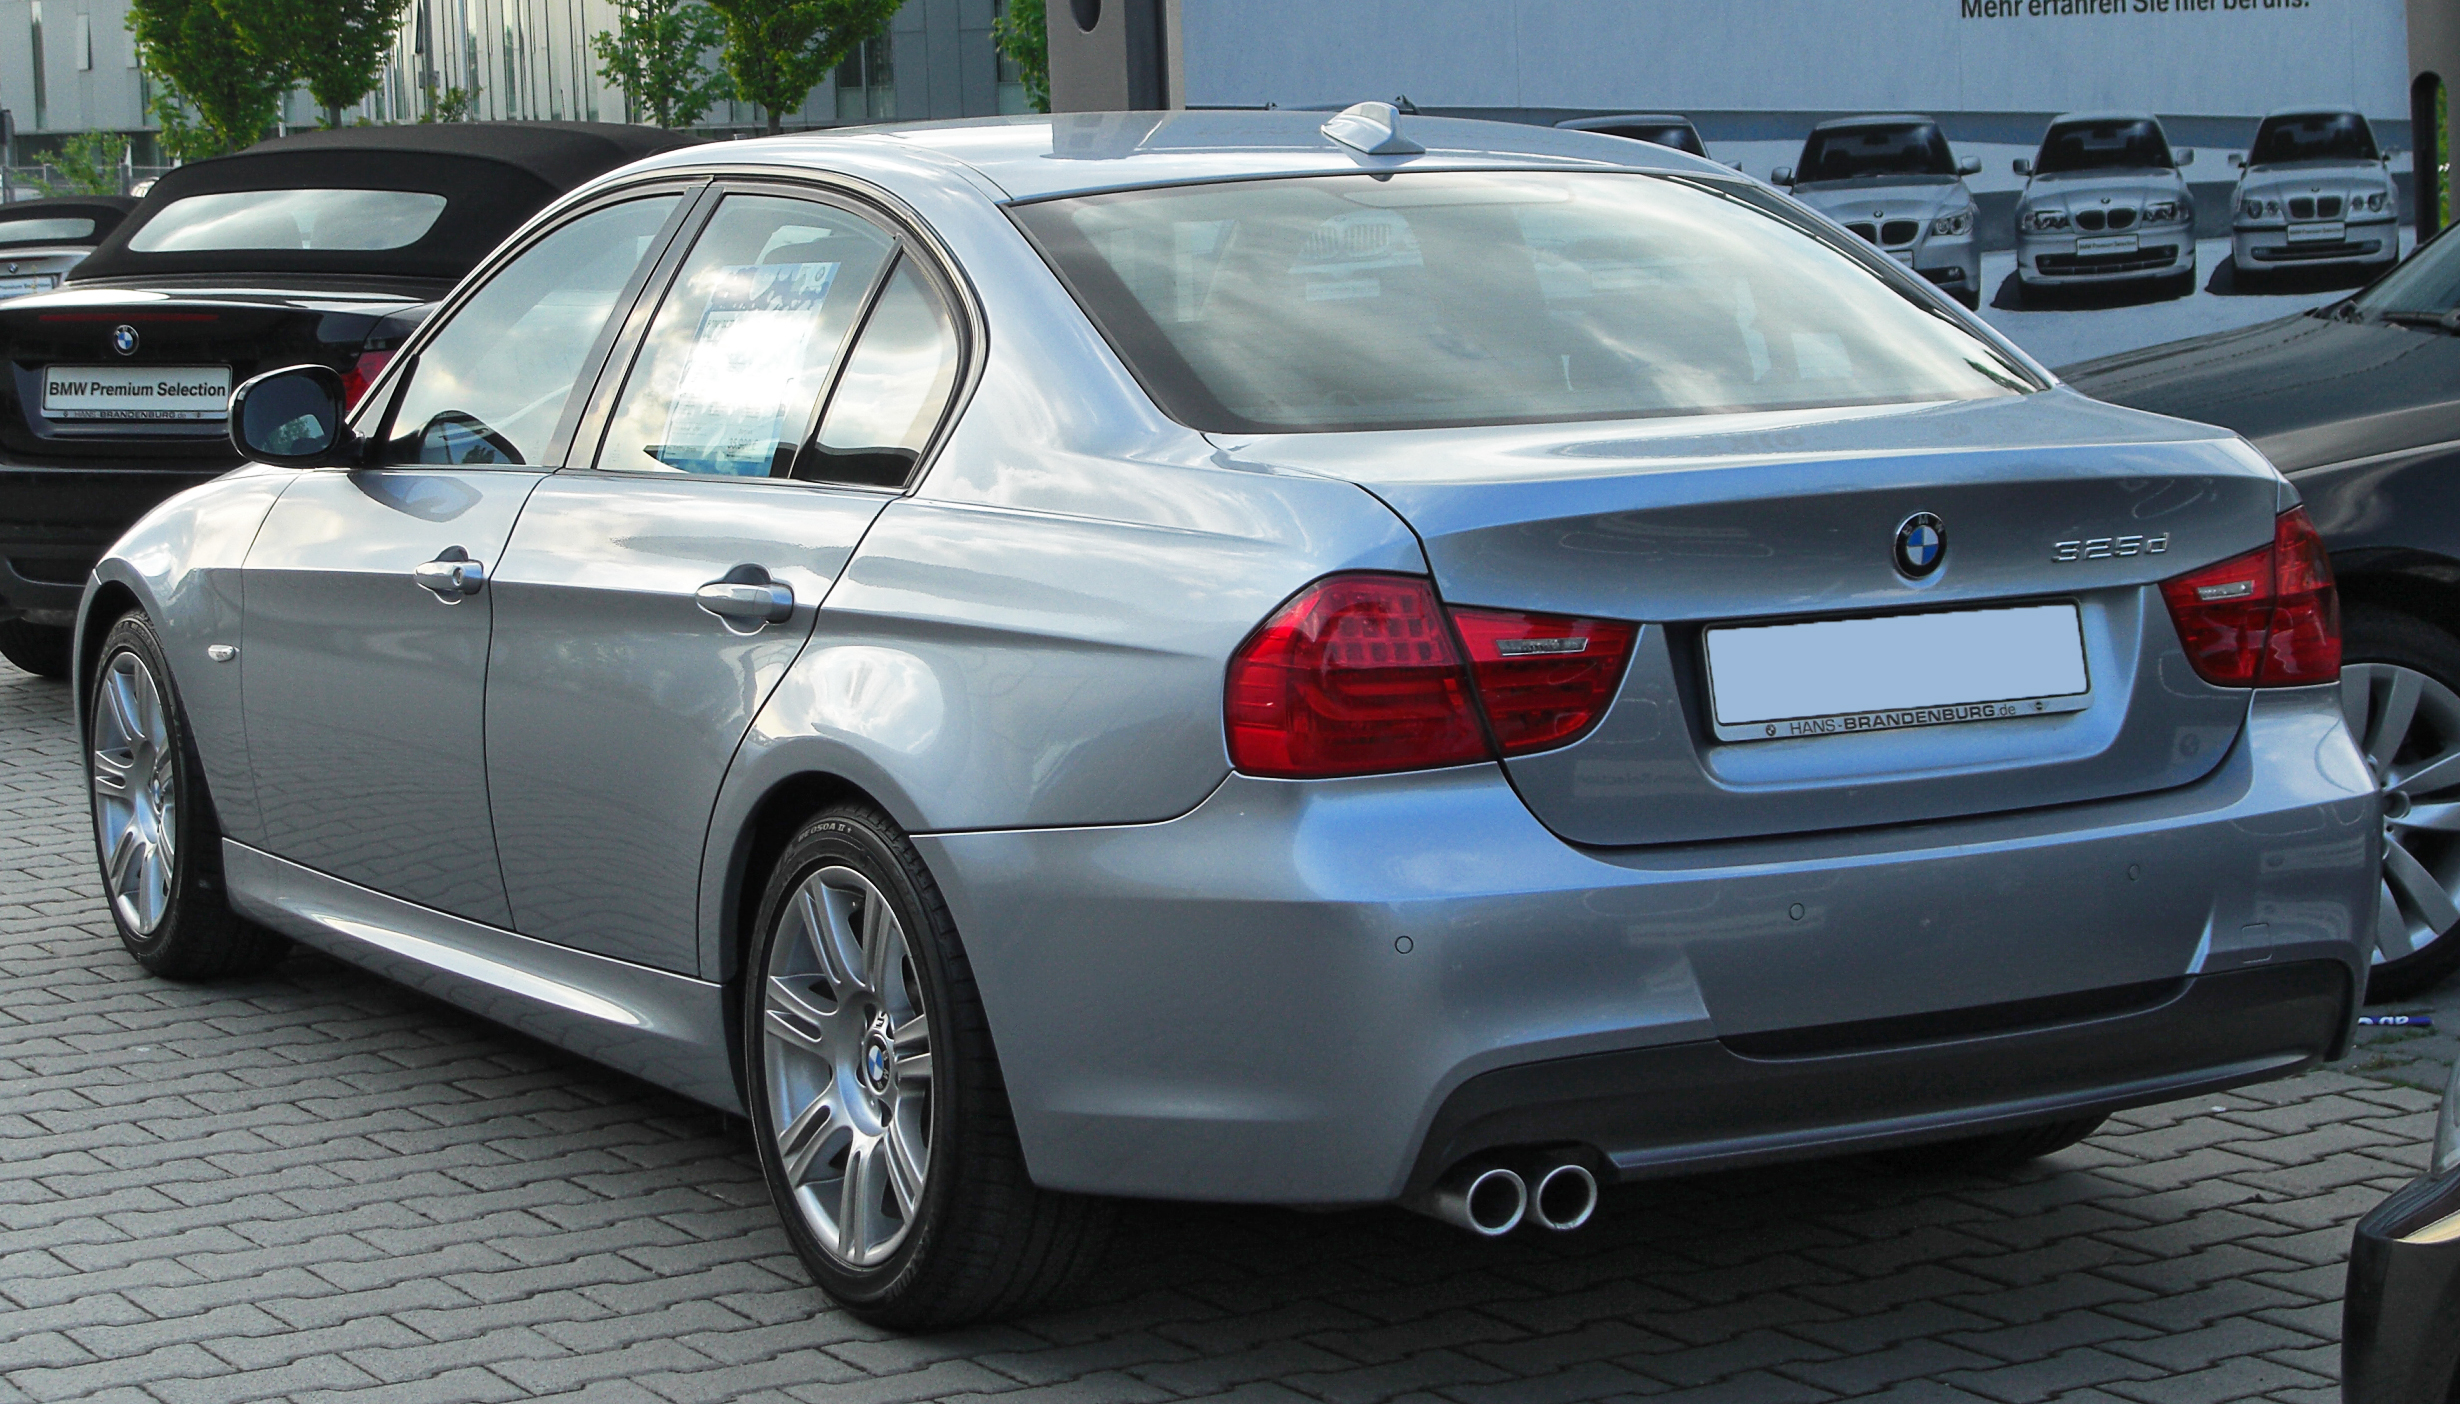 file bmw 325d m sportpaket e90 facelift rear. Black Bedroom Furniture Sets. Home Design Ideas